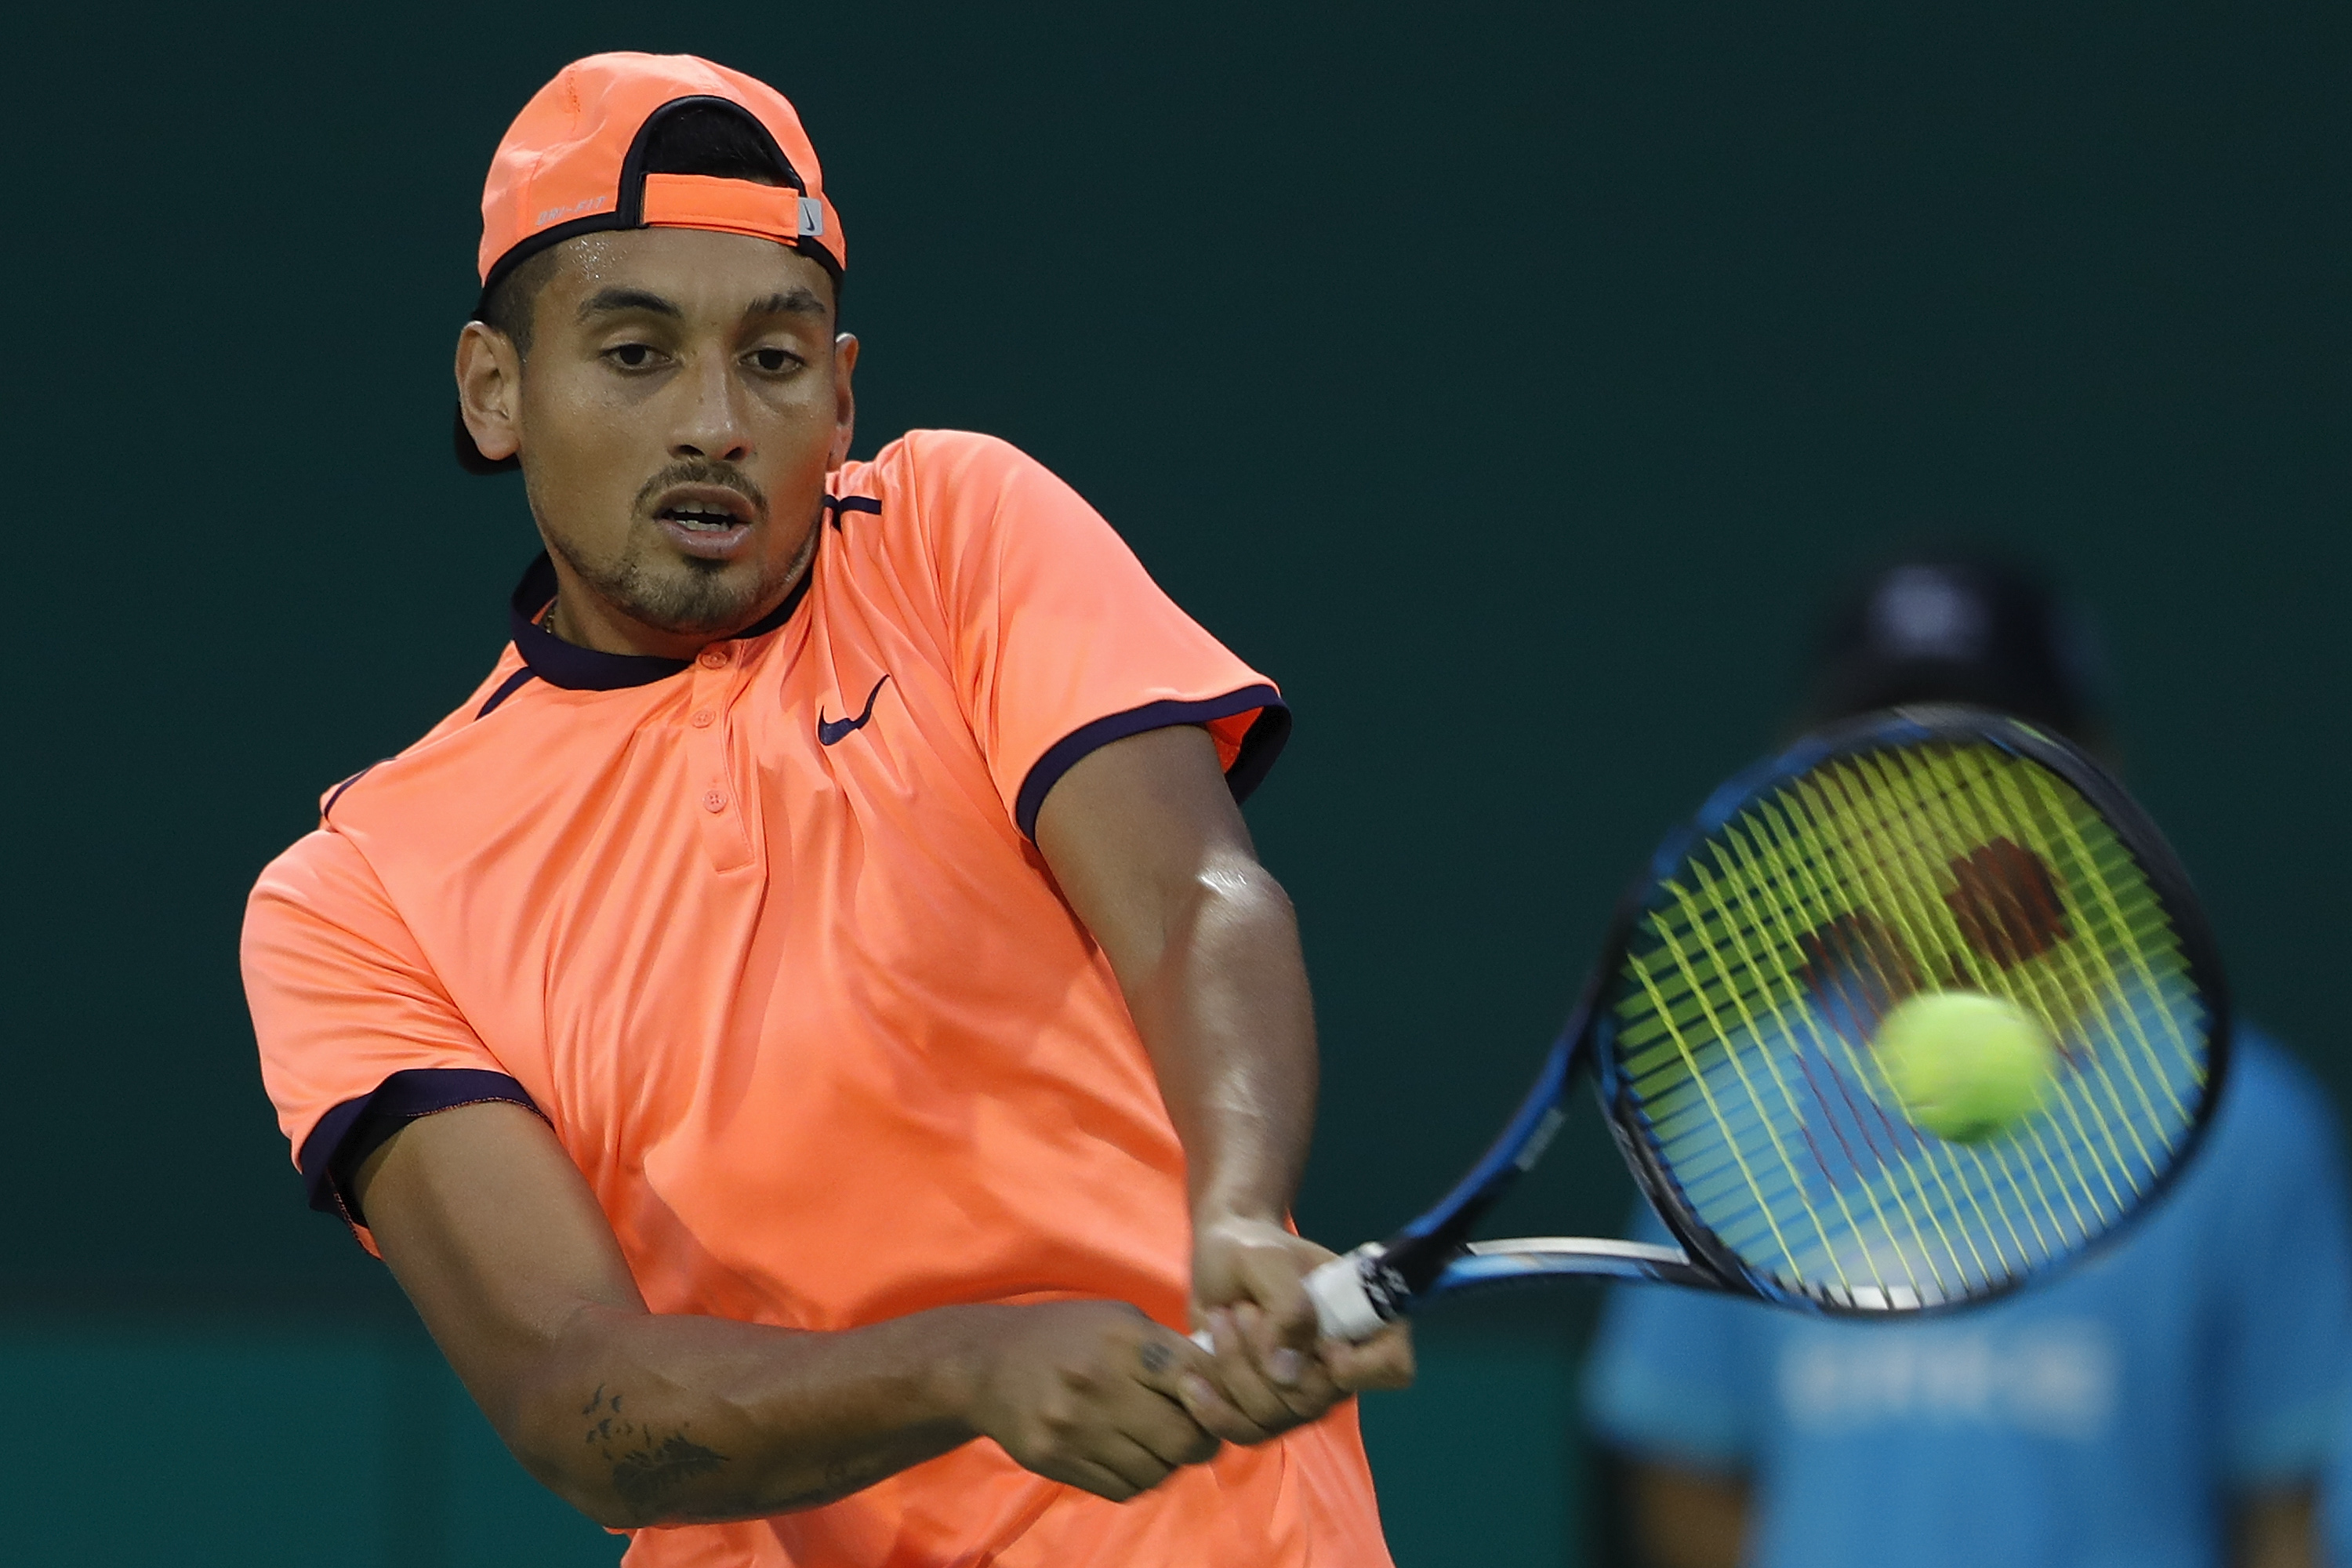 Tennis bad boy Nick Kyrgios hit with eight-week suspension by the ATP